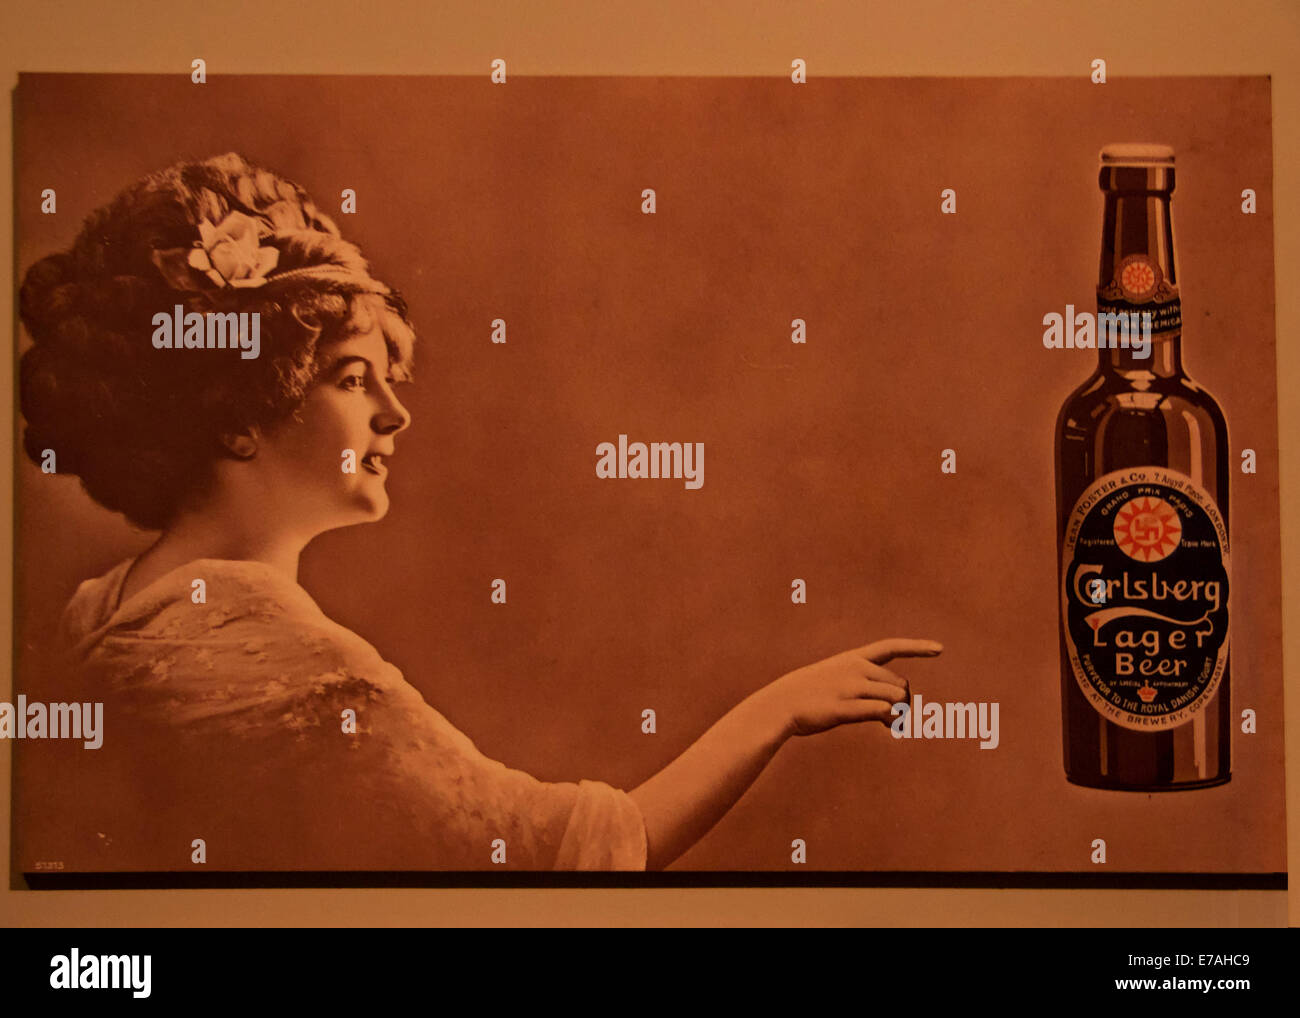 Old sepia poster promotes Carlsberg Lager beer. - Stock Image